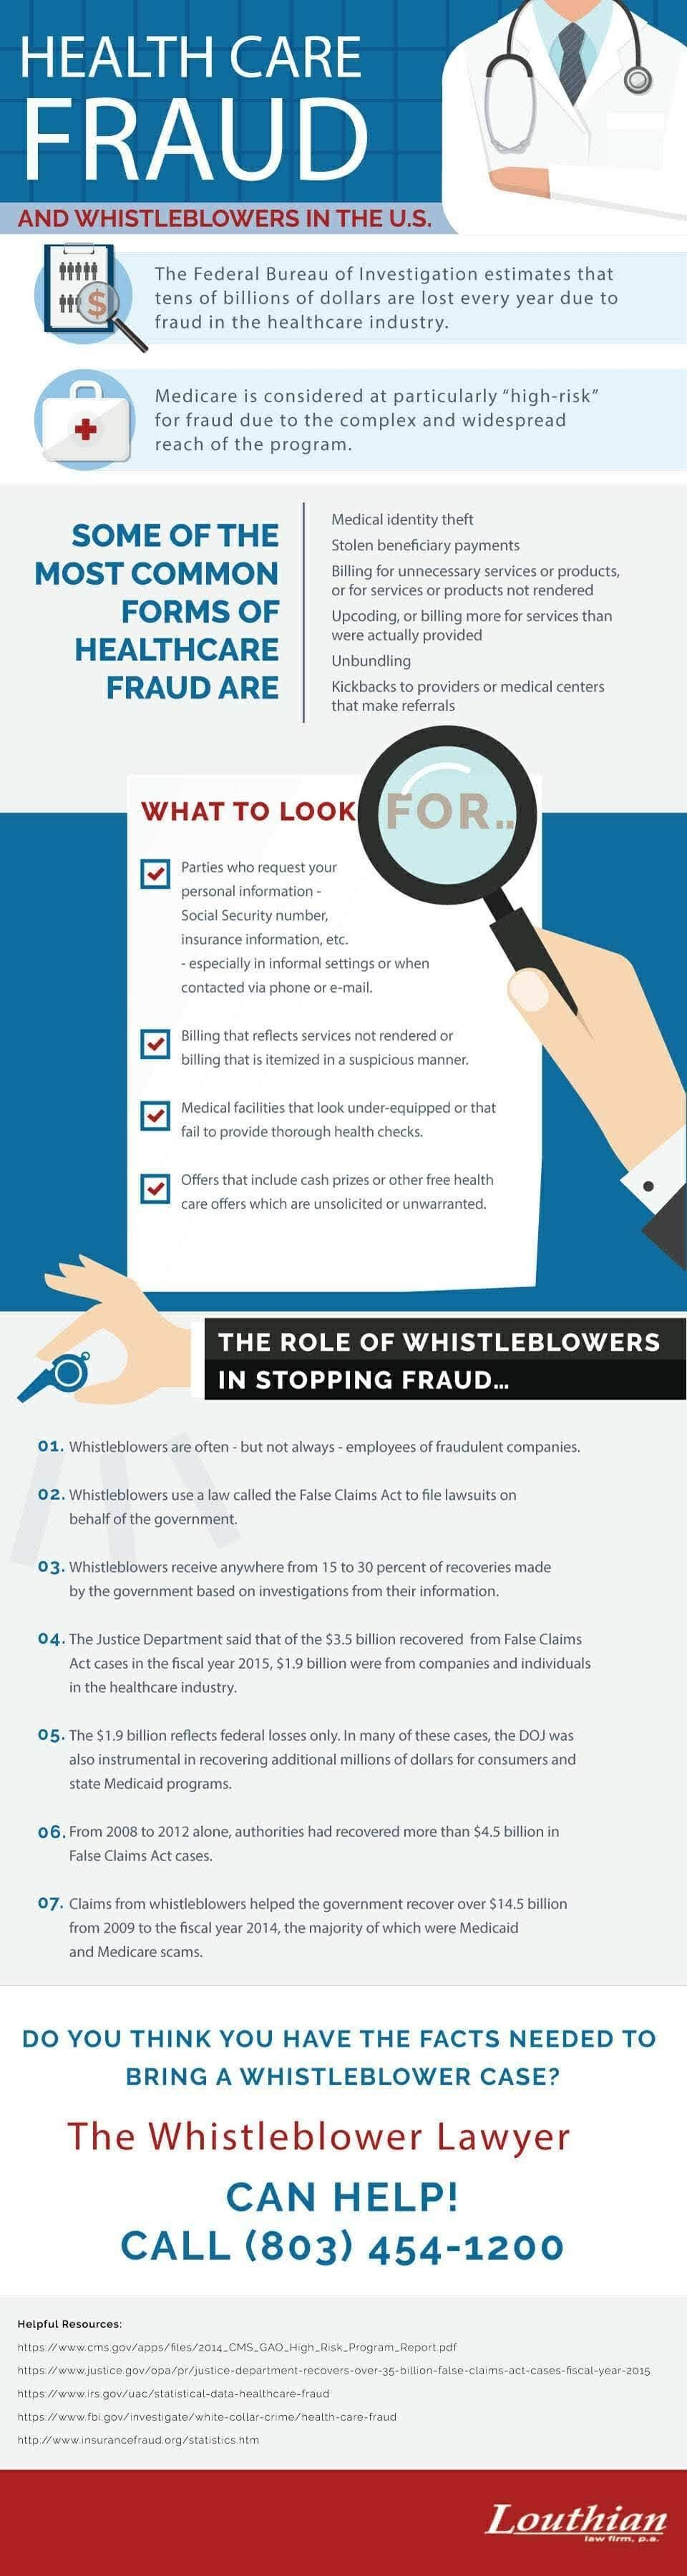 Health Care Fraud and Whistleblower in the U.S #infographic